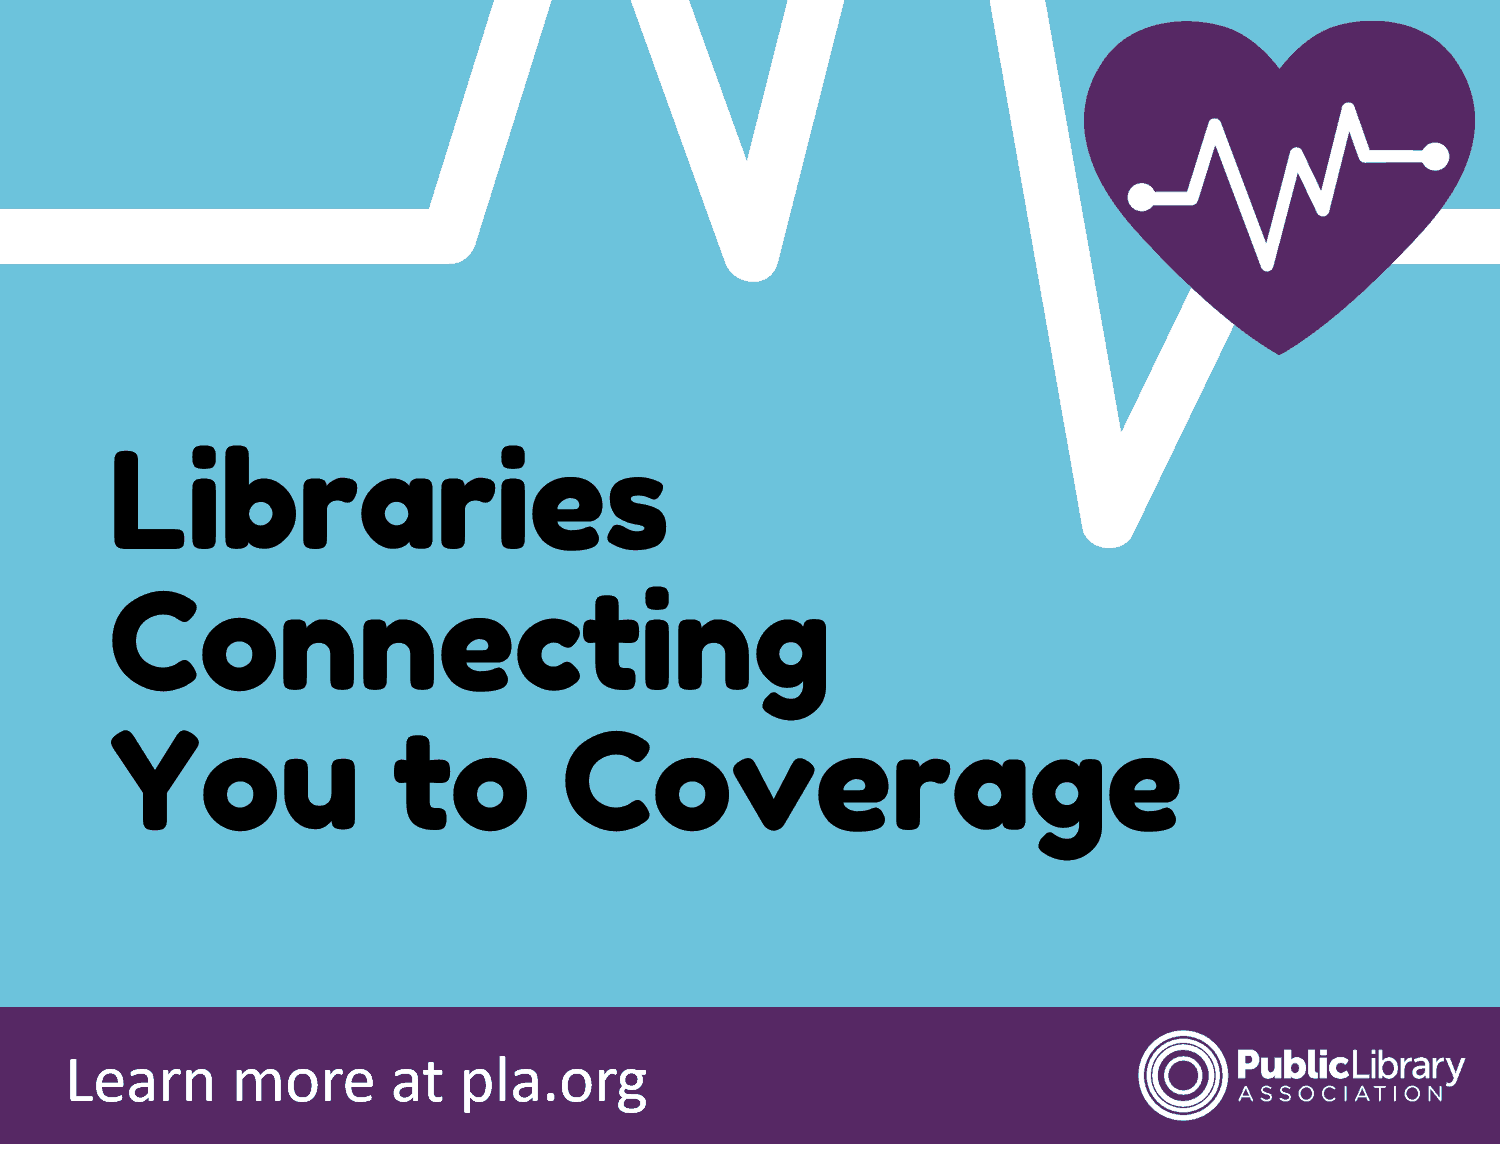 Libraries Connecting You to Coverage